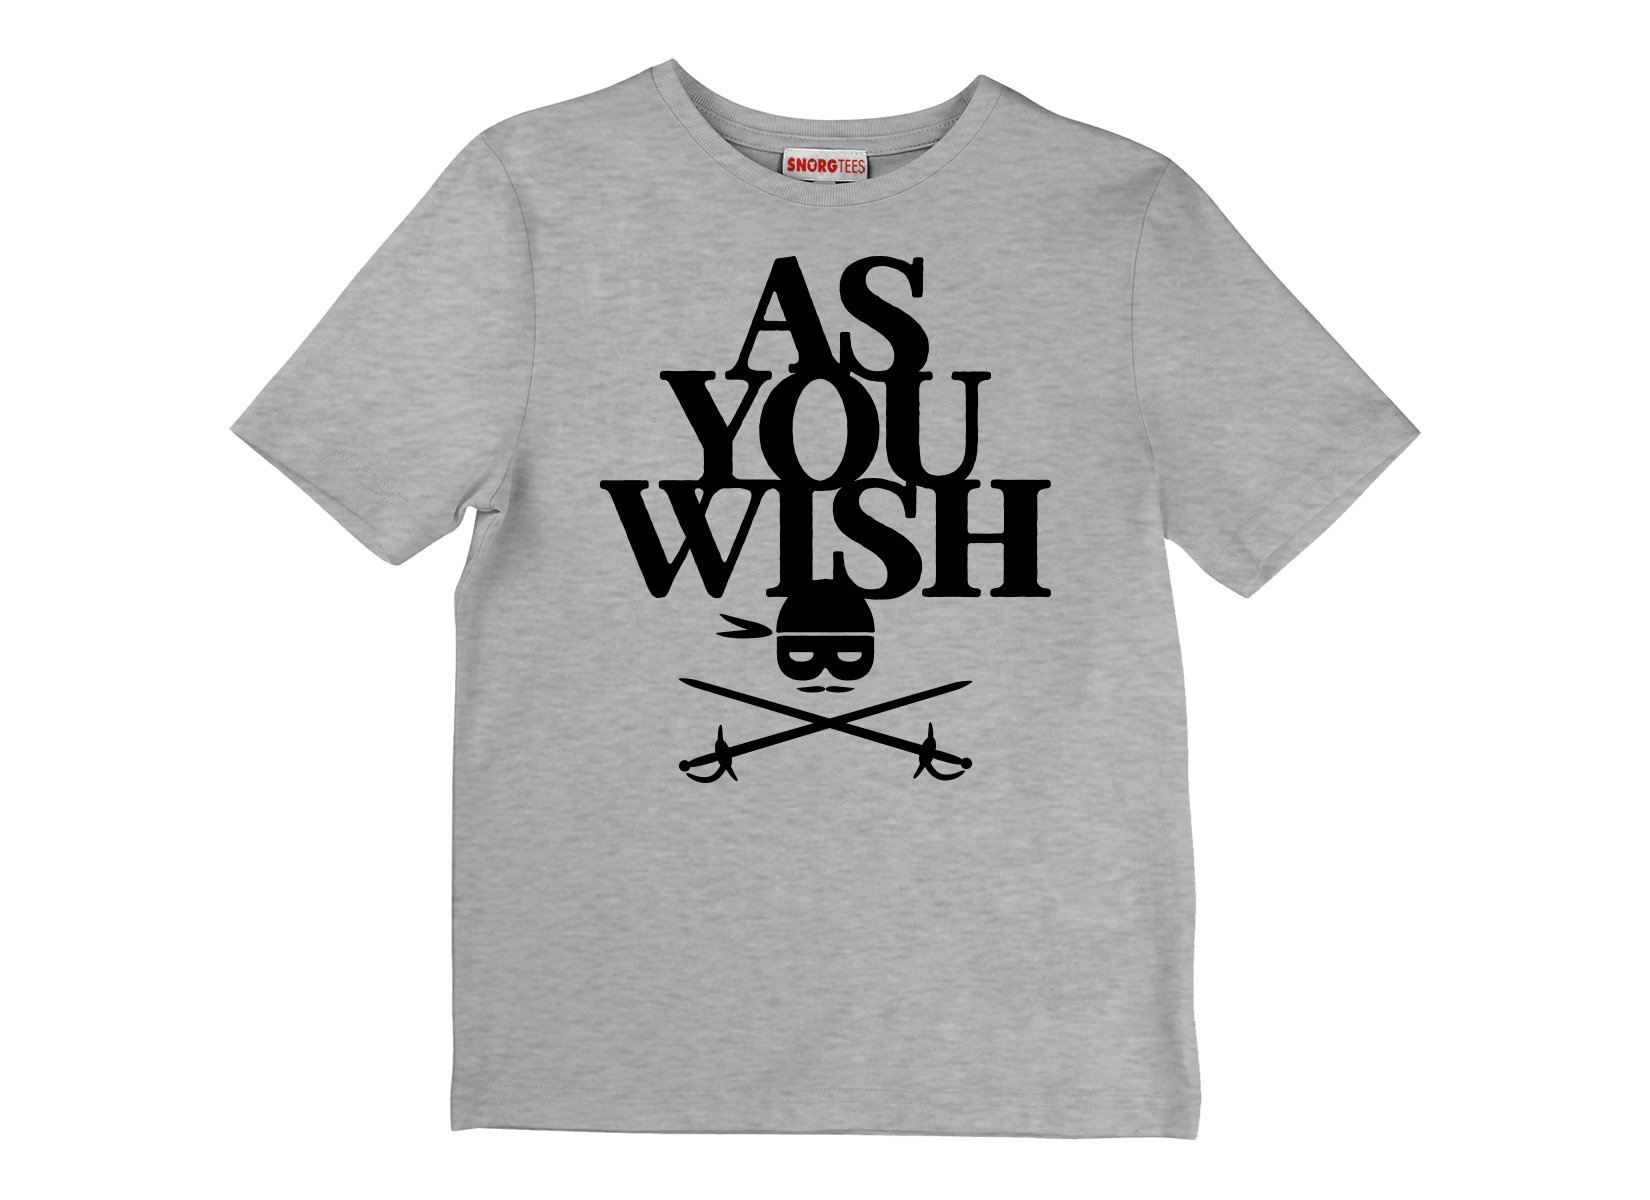 As You Wish on Kids T-Shirt